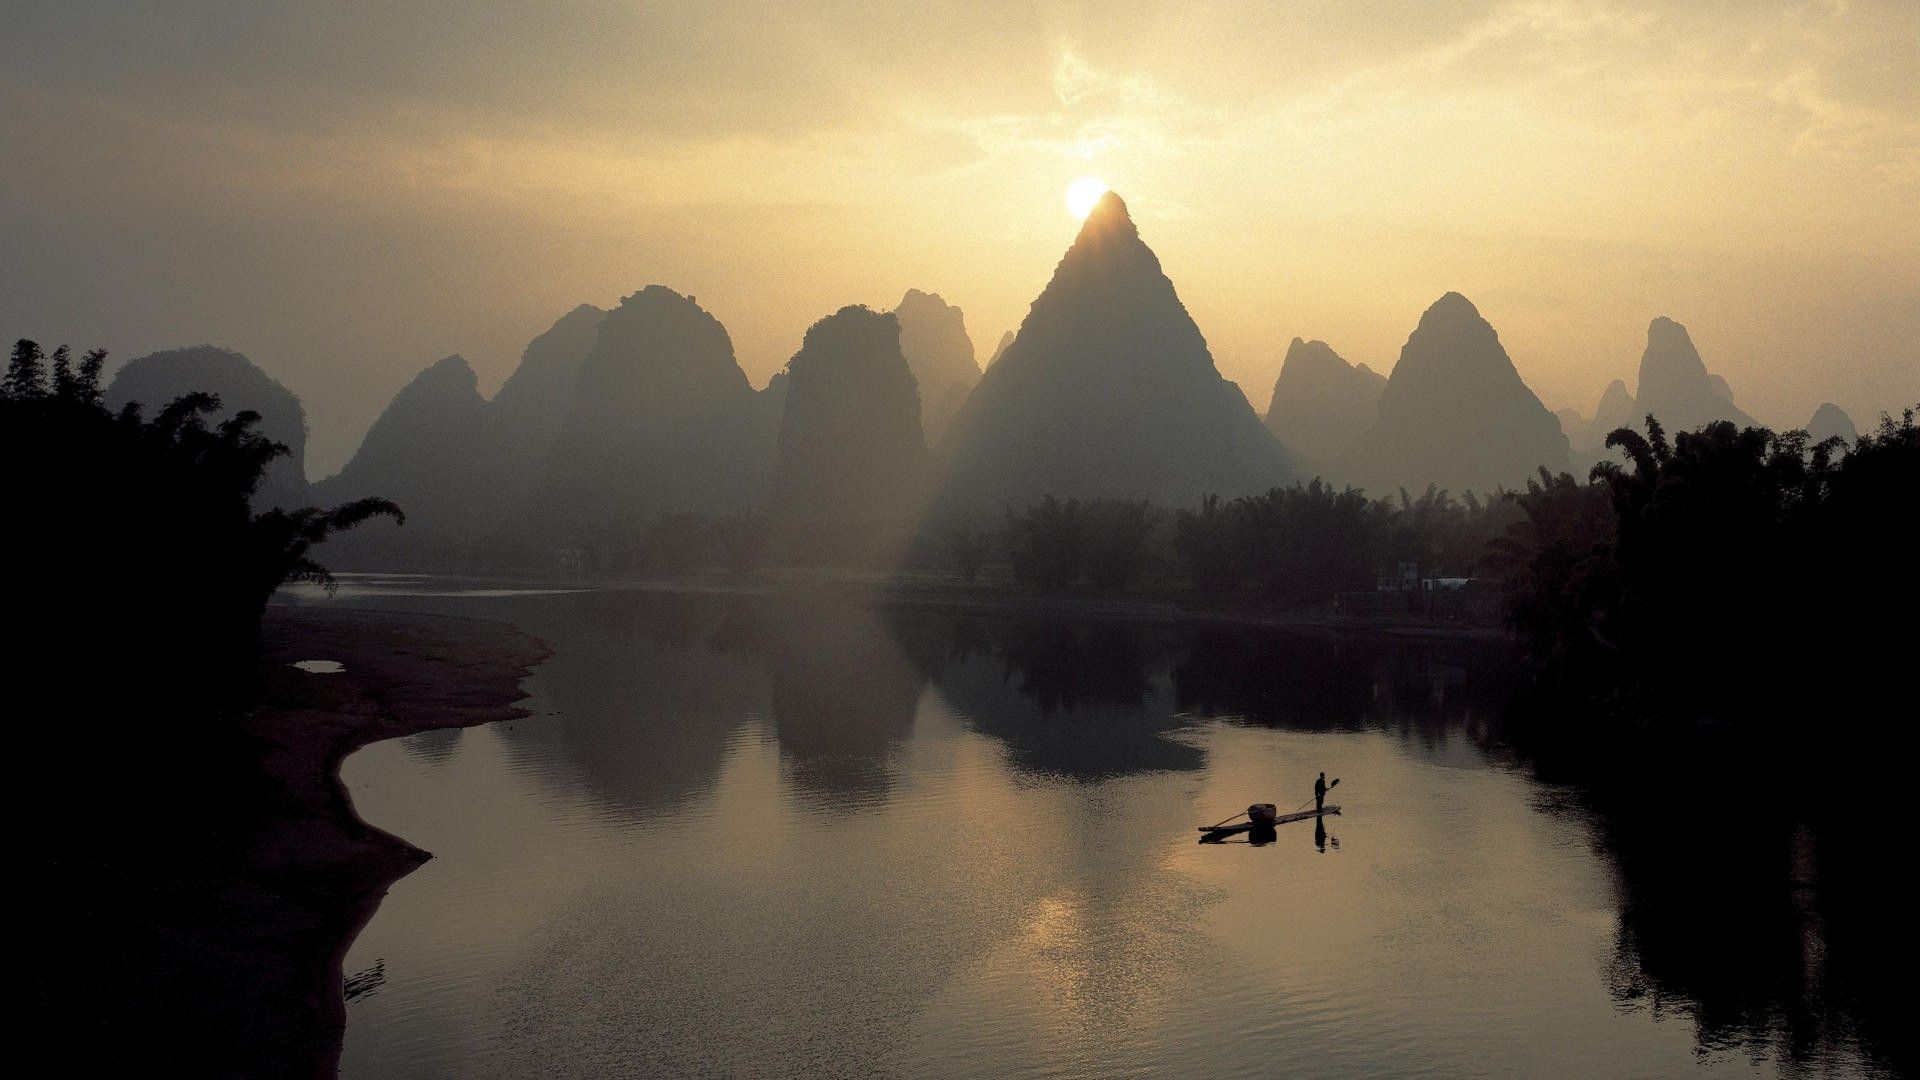 Chinese Landscape Wallpaper (71+ Images